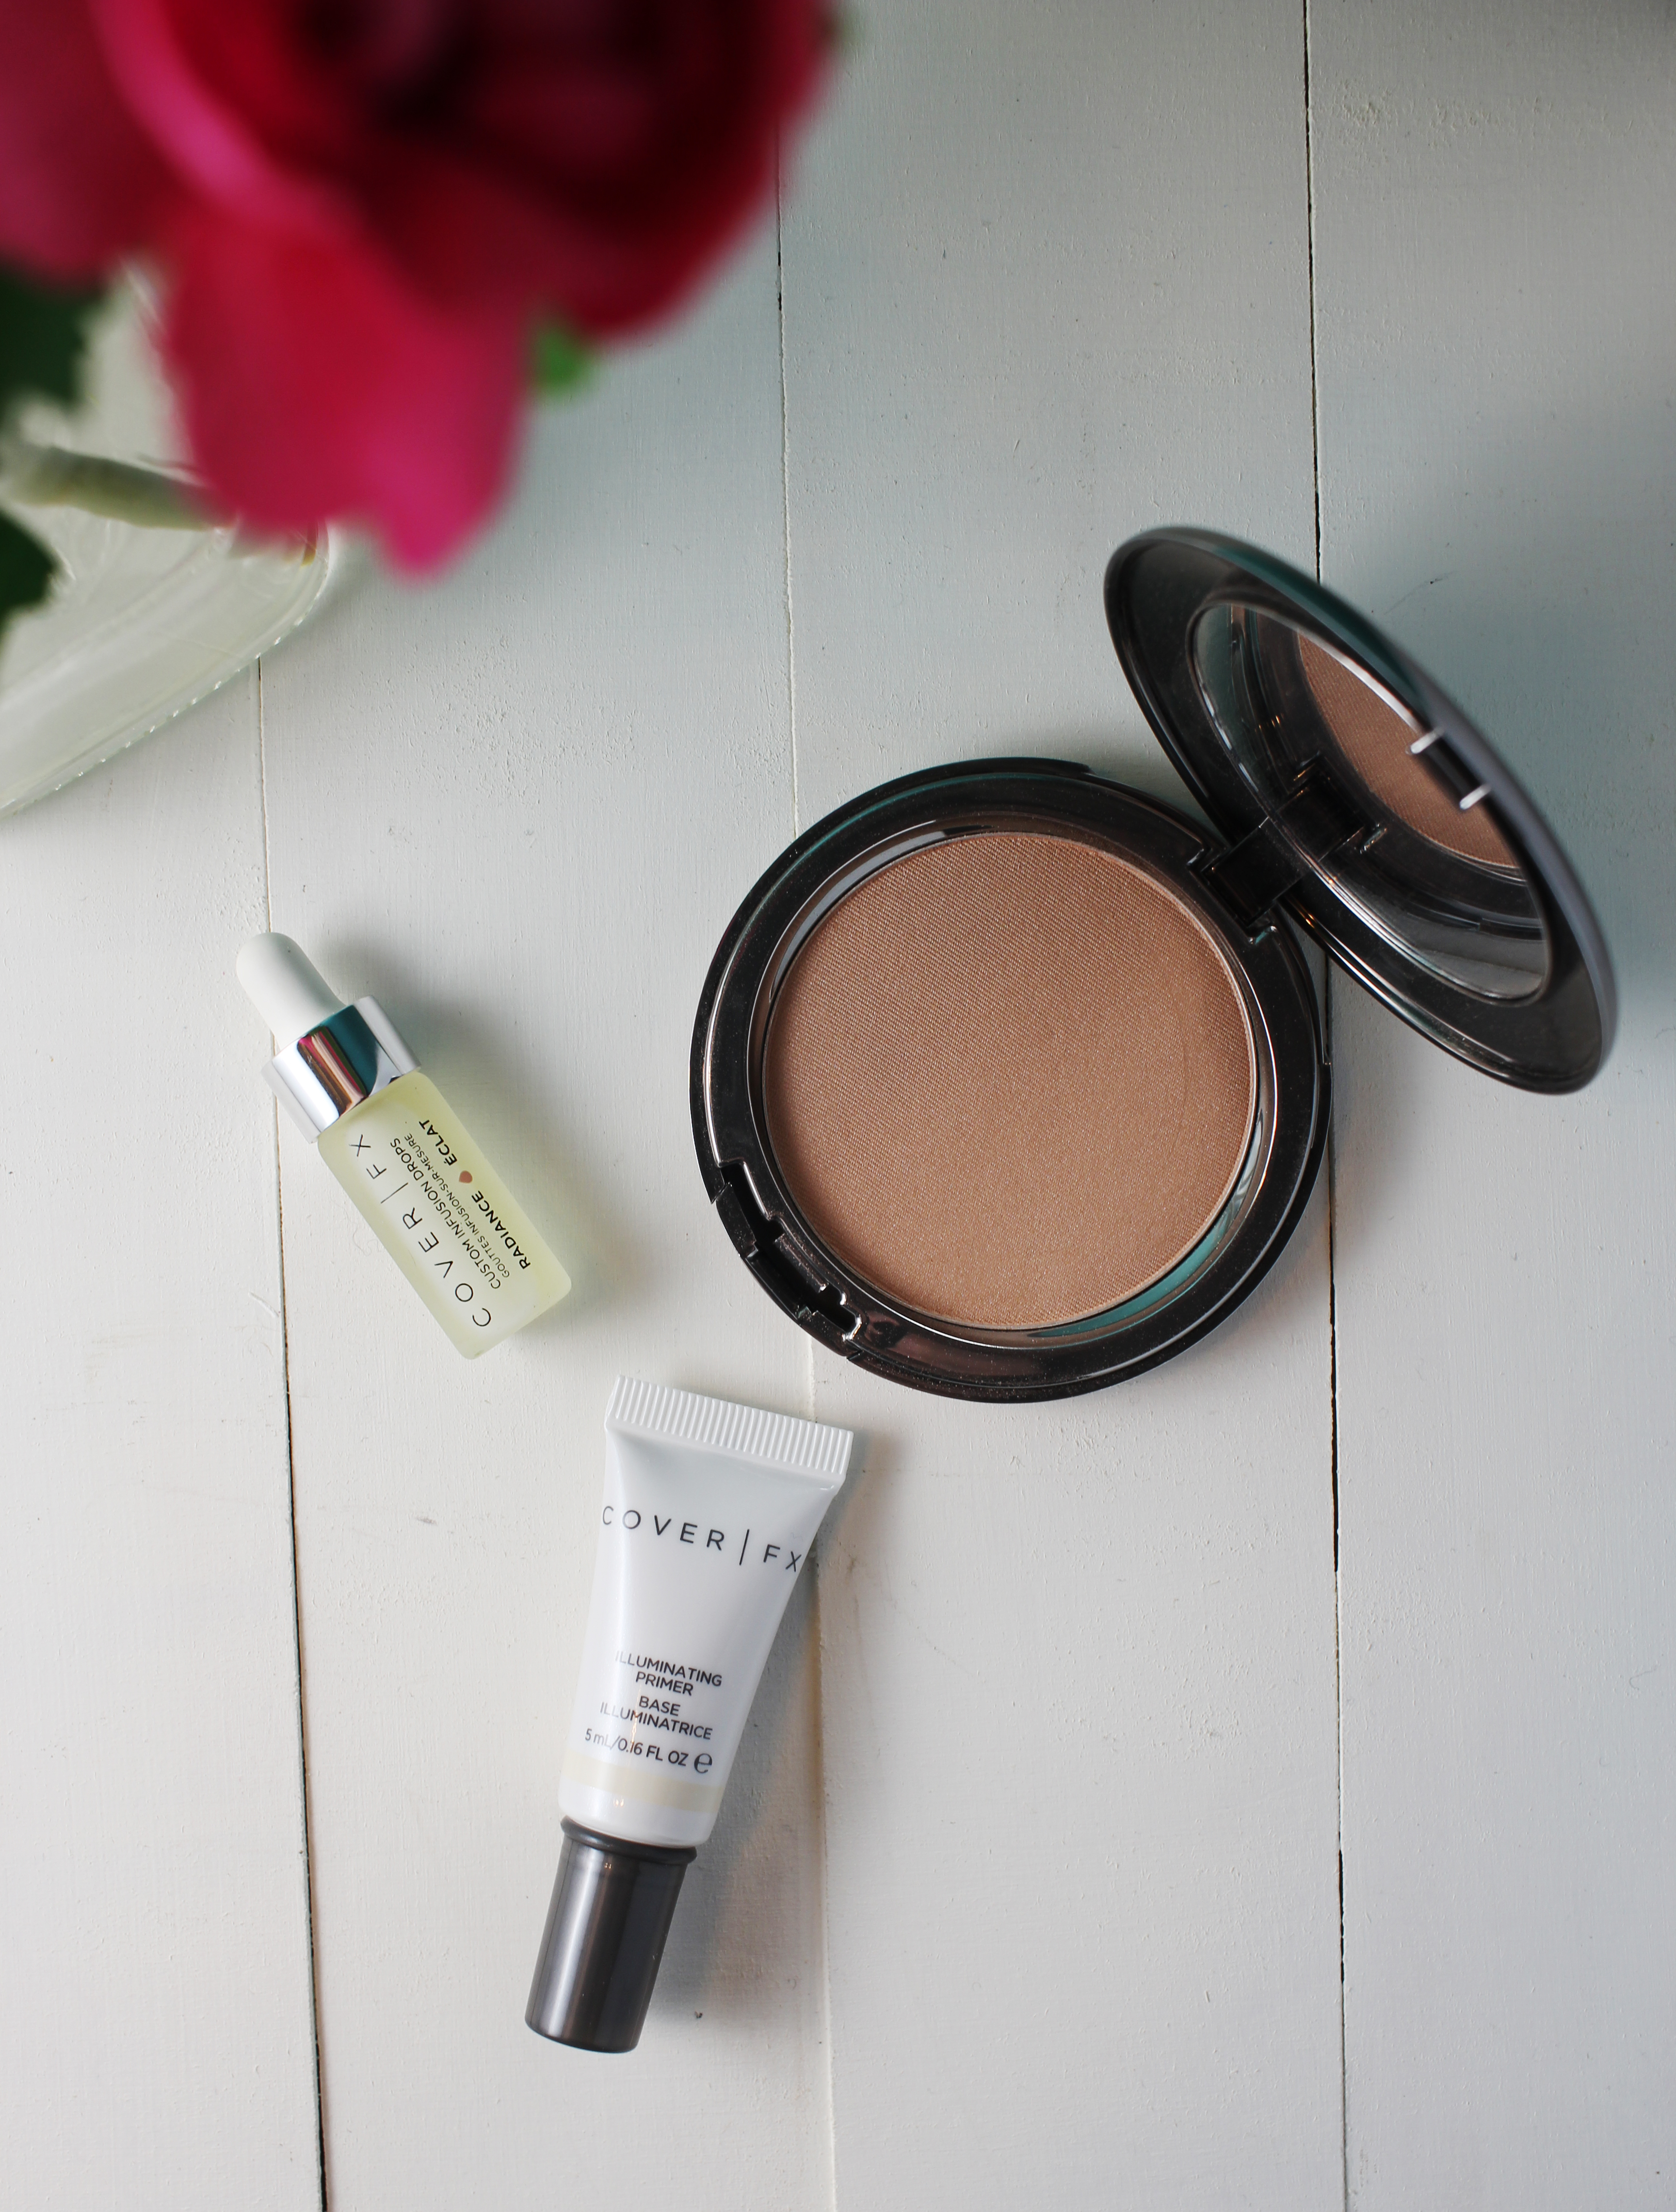 cover-fx-the-perfect-light-highlighting-powder-review-swatches